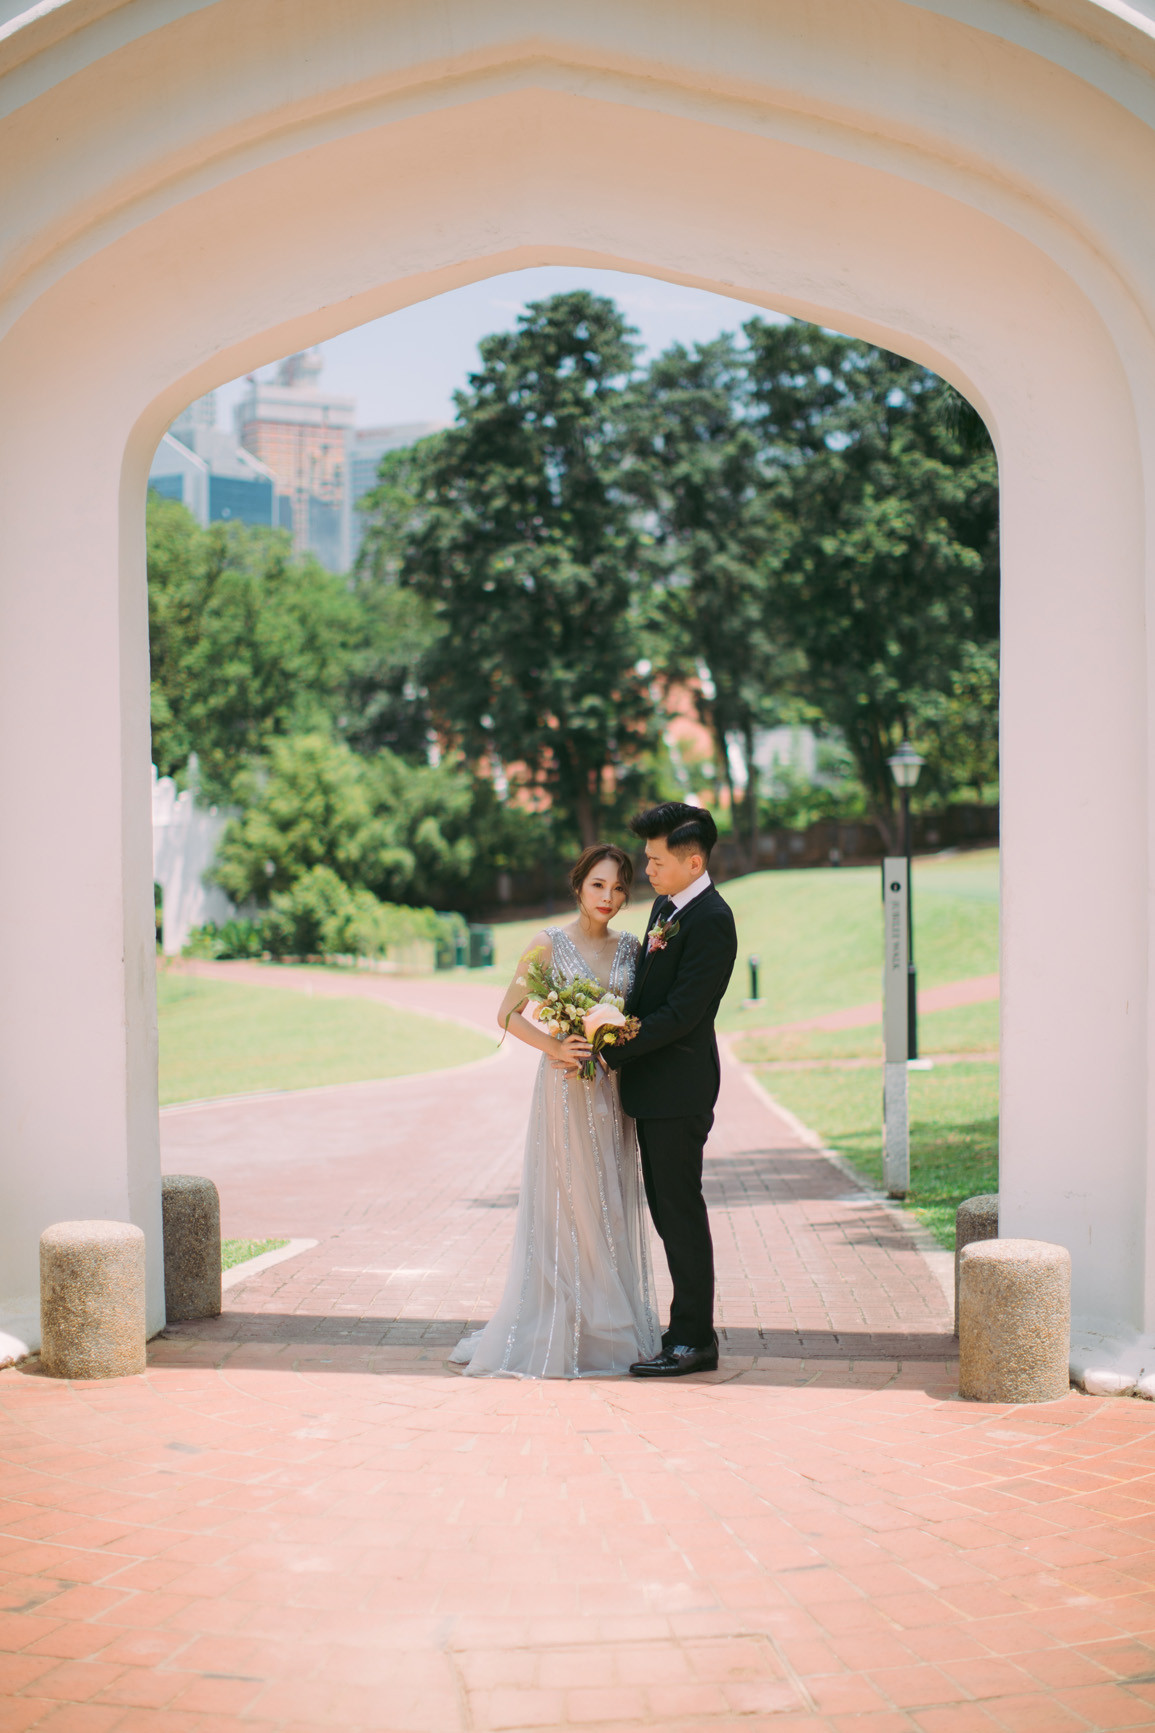 melvin and xinni (39 of 85).jpg